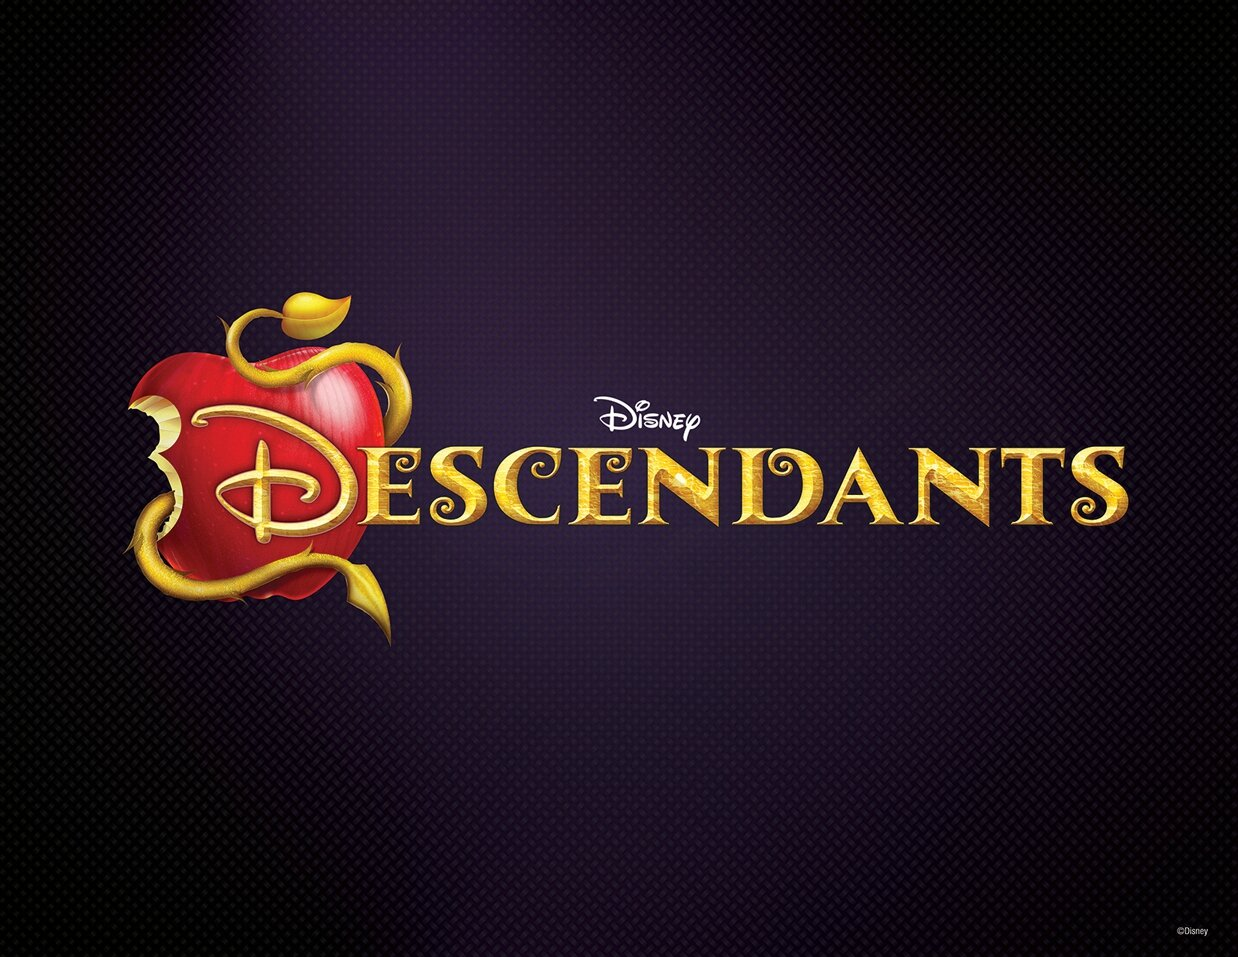 The Descendants Kenny Ortega